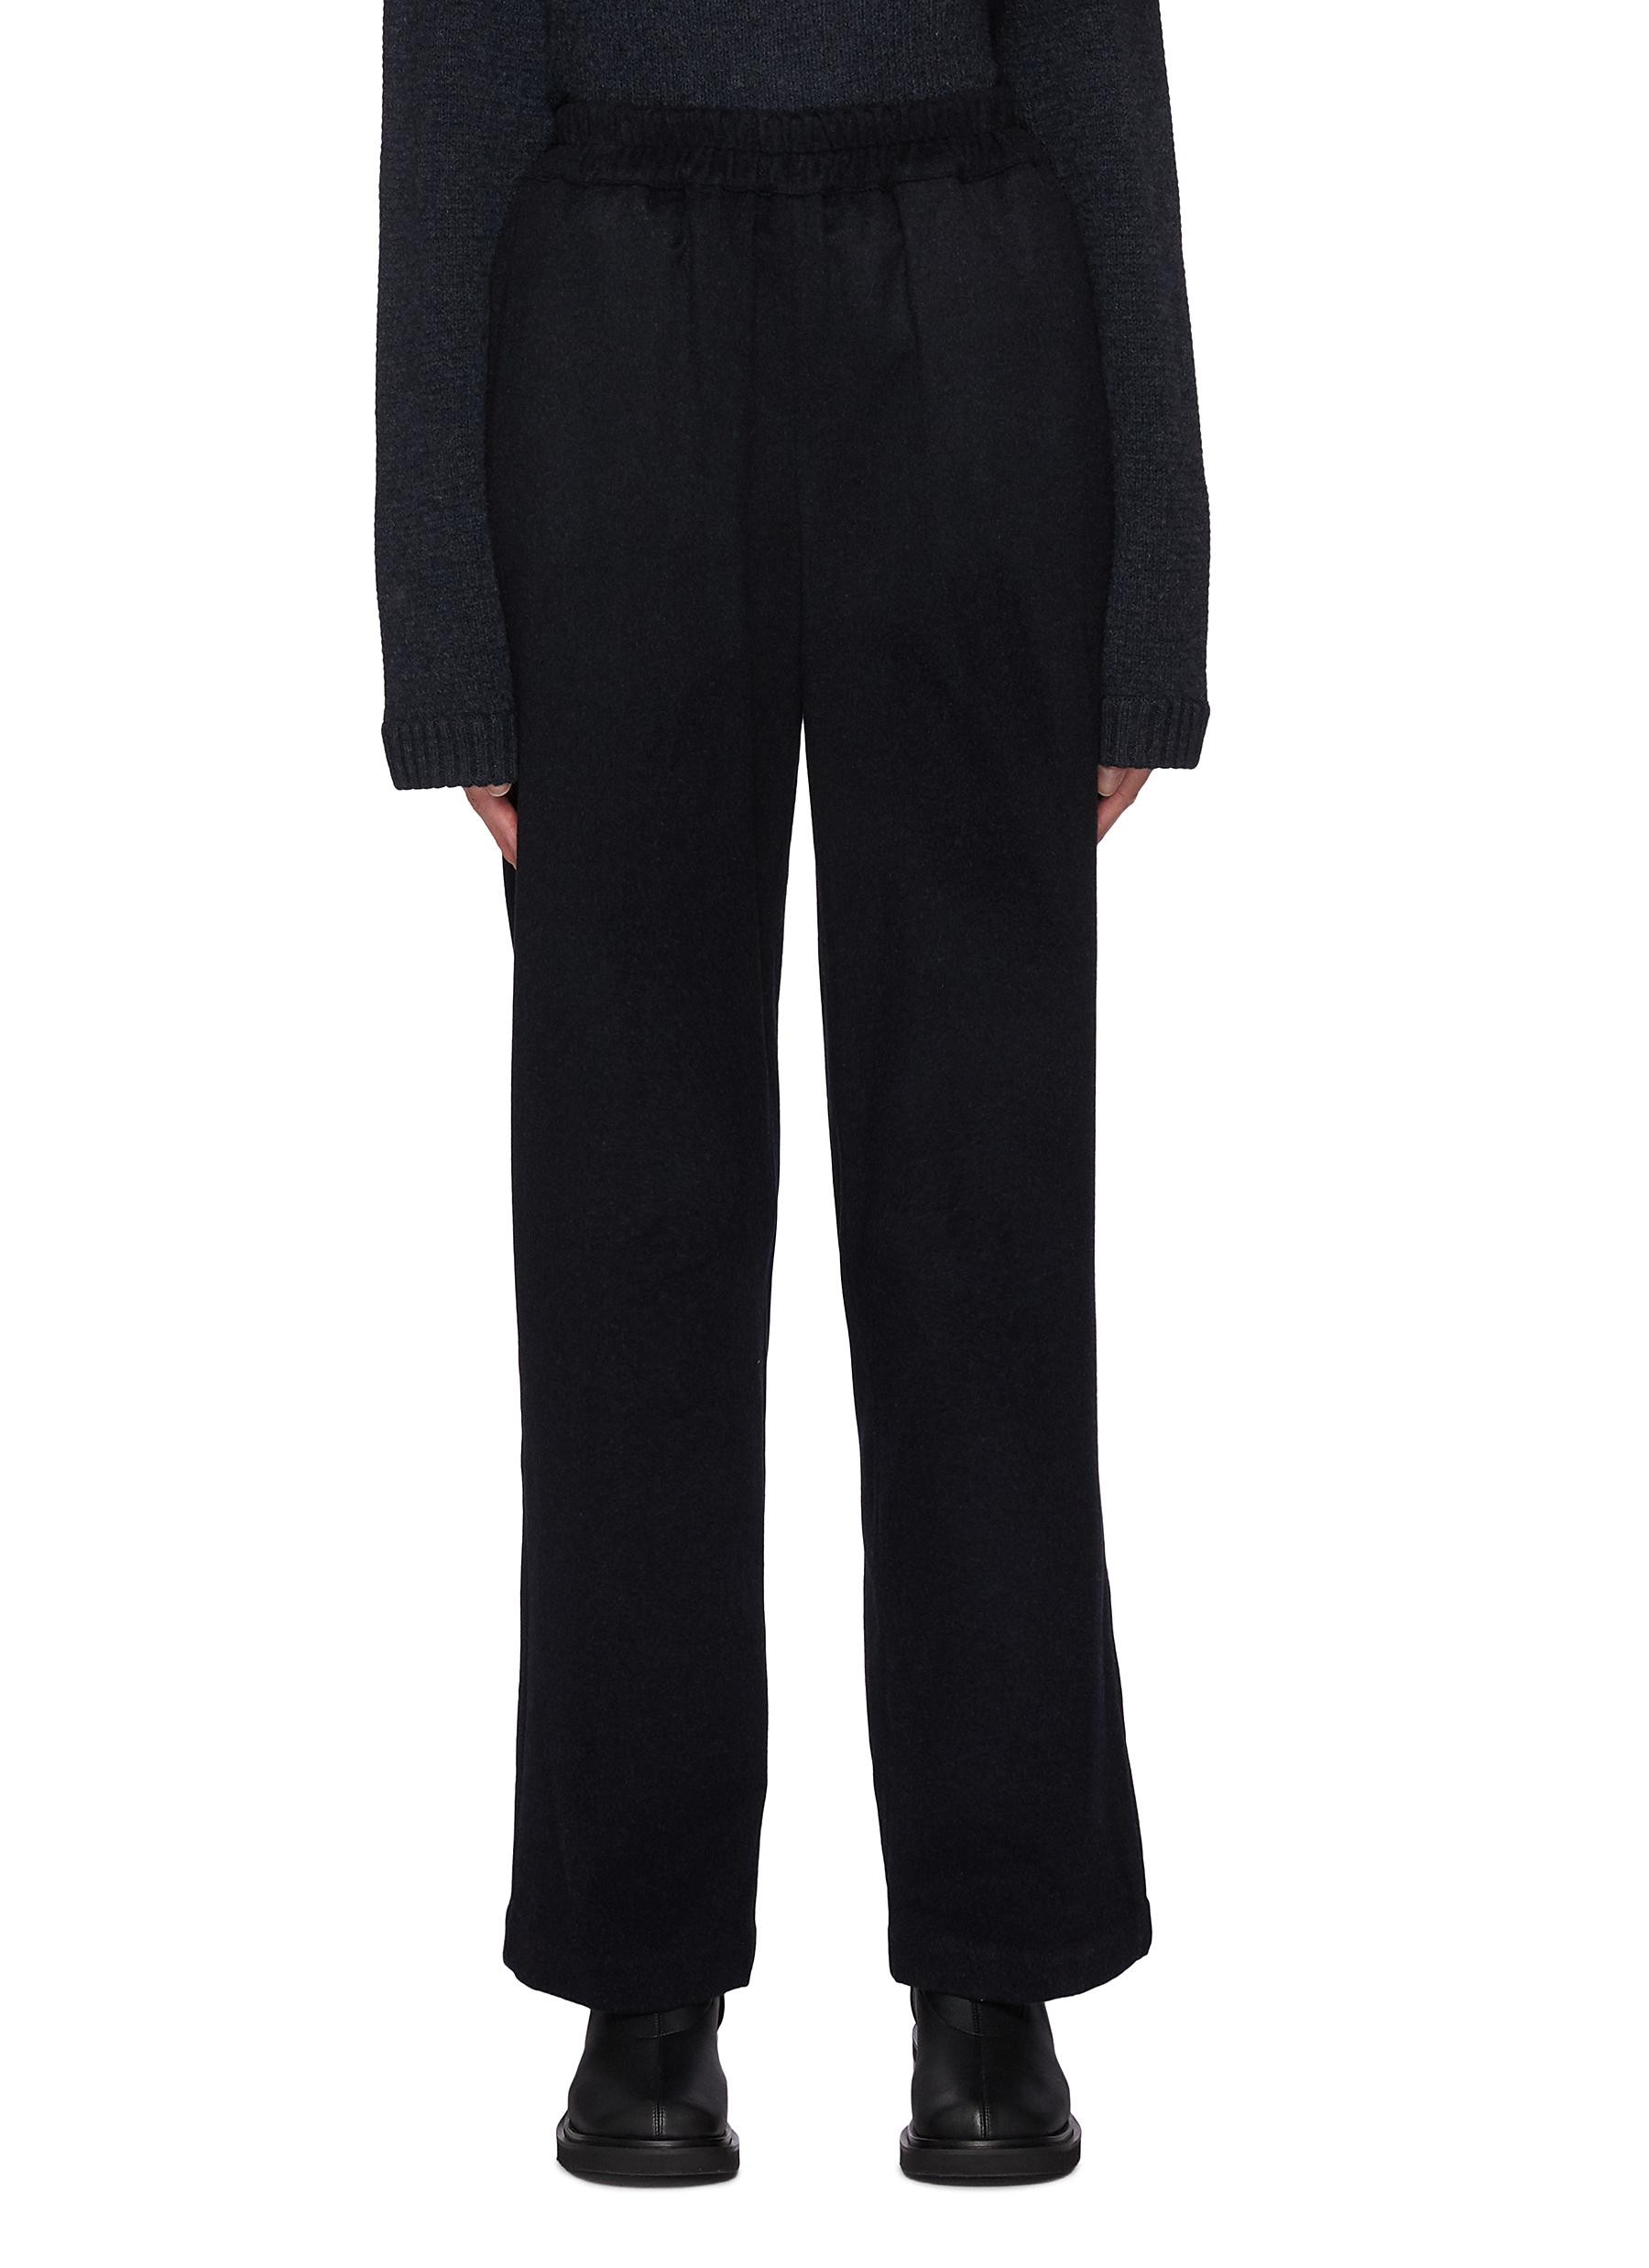 Submal' Wide Pants